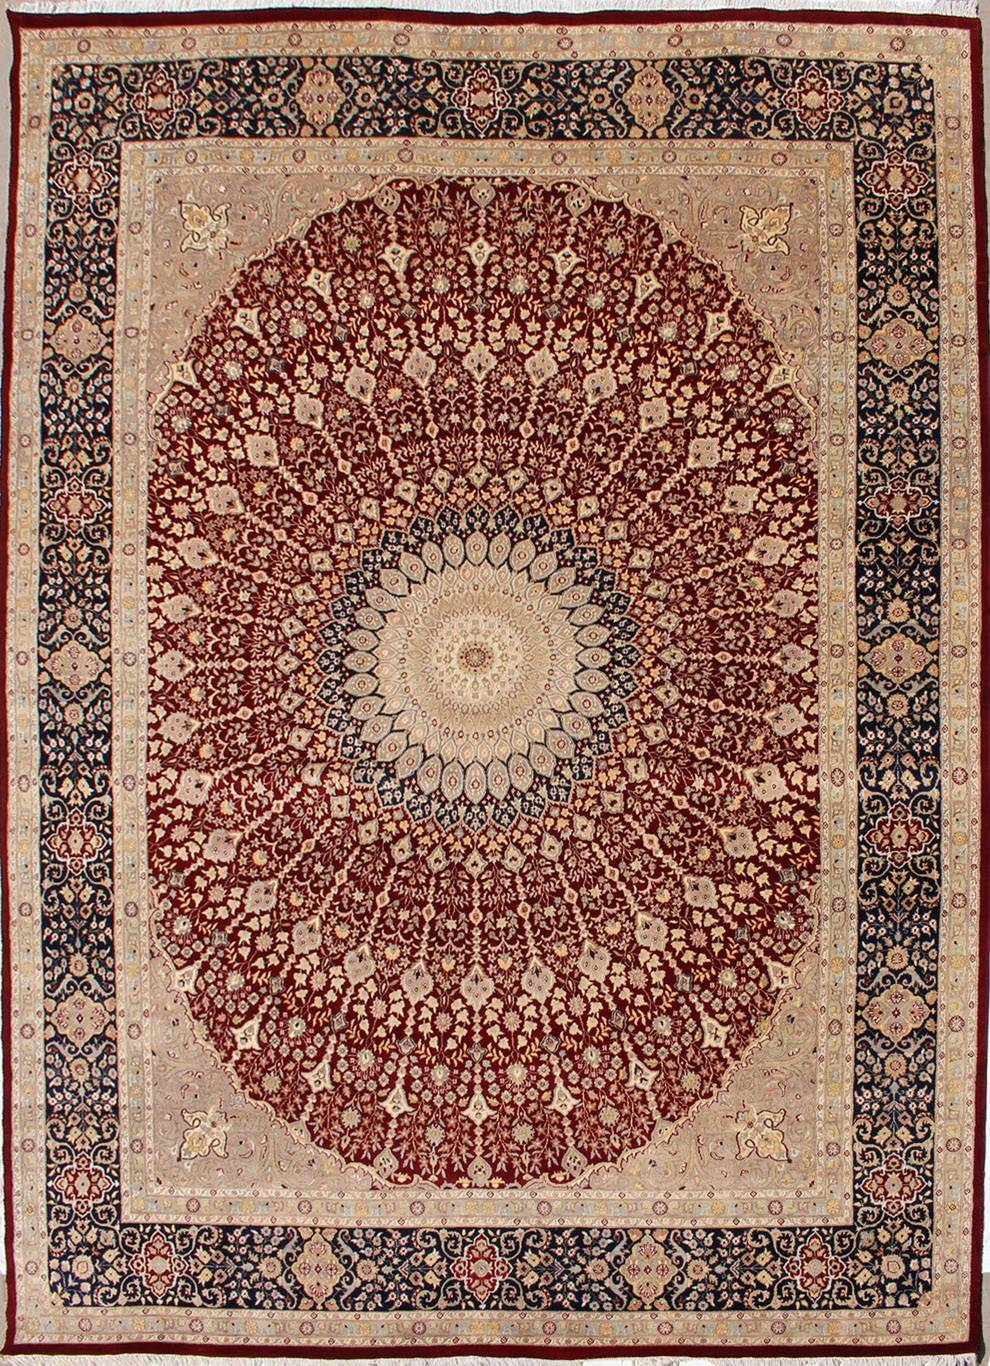 11'9x15'0 Rug - Floral - Handmade Pak Persian High Quality Rugs - a 12x15  Rug size - RugsTC